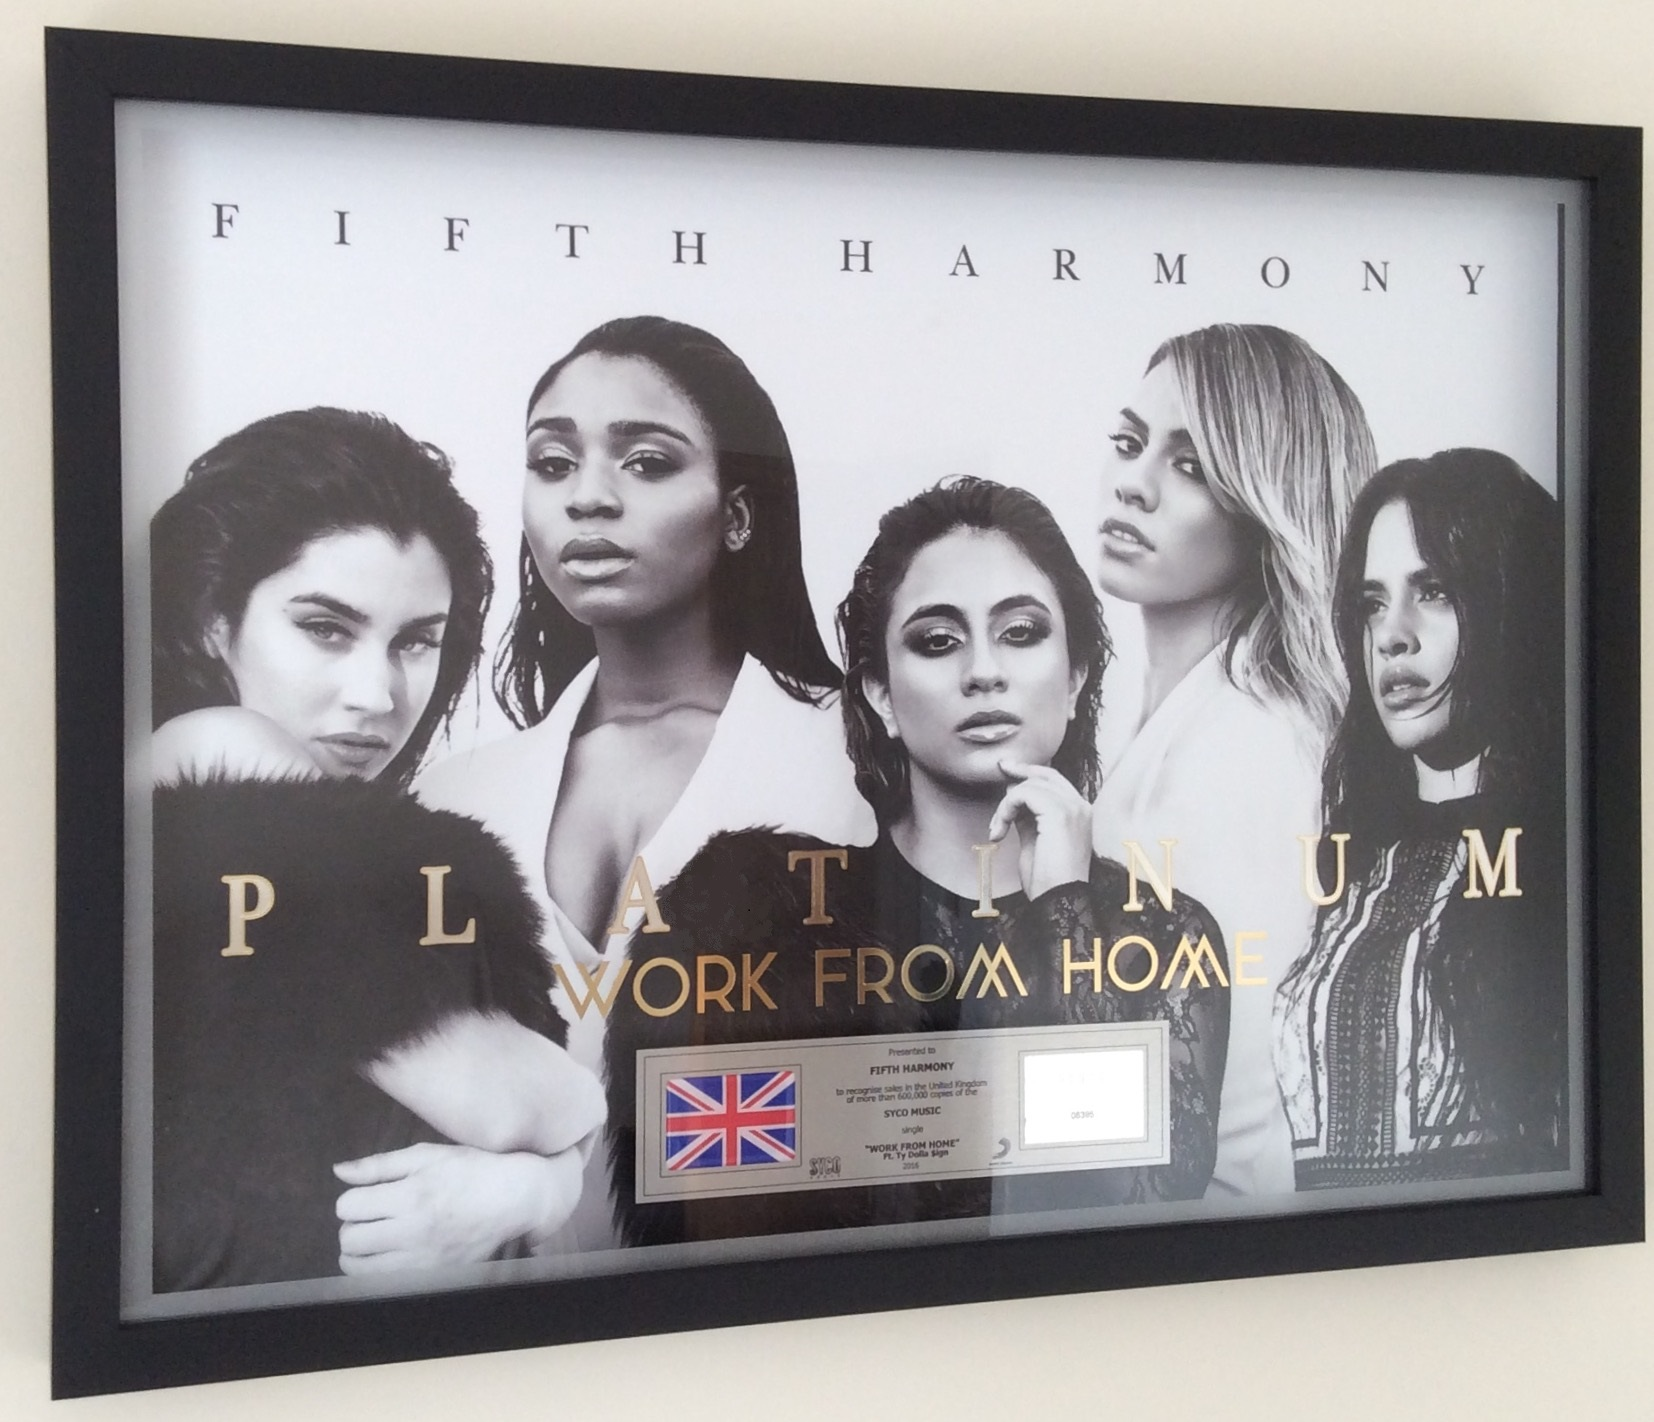 Fifth Harmony 500x700mm